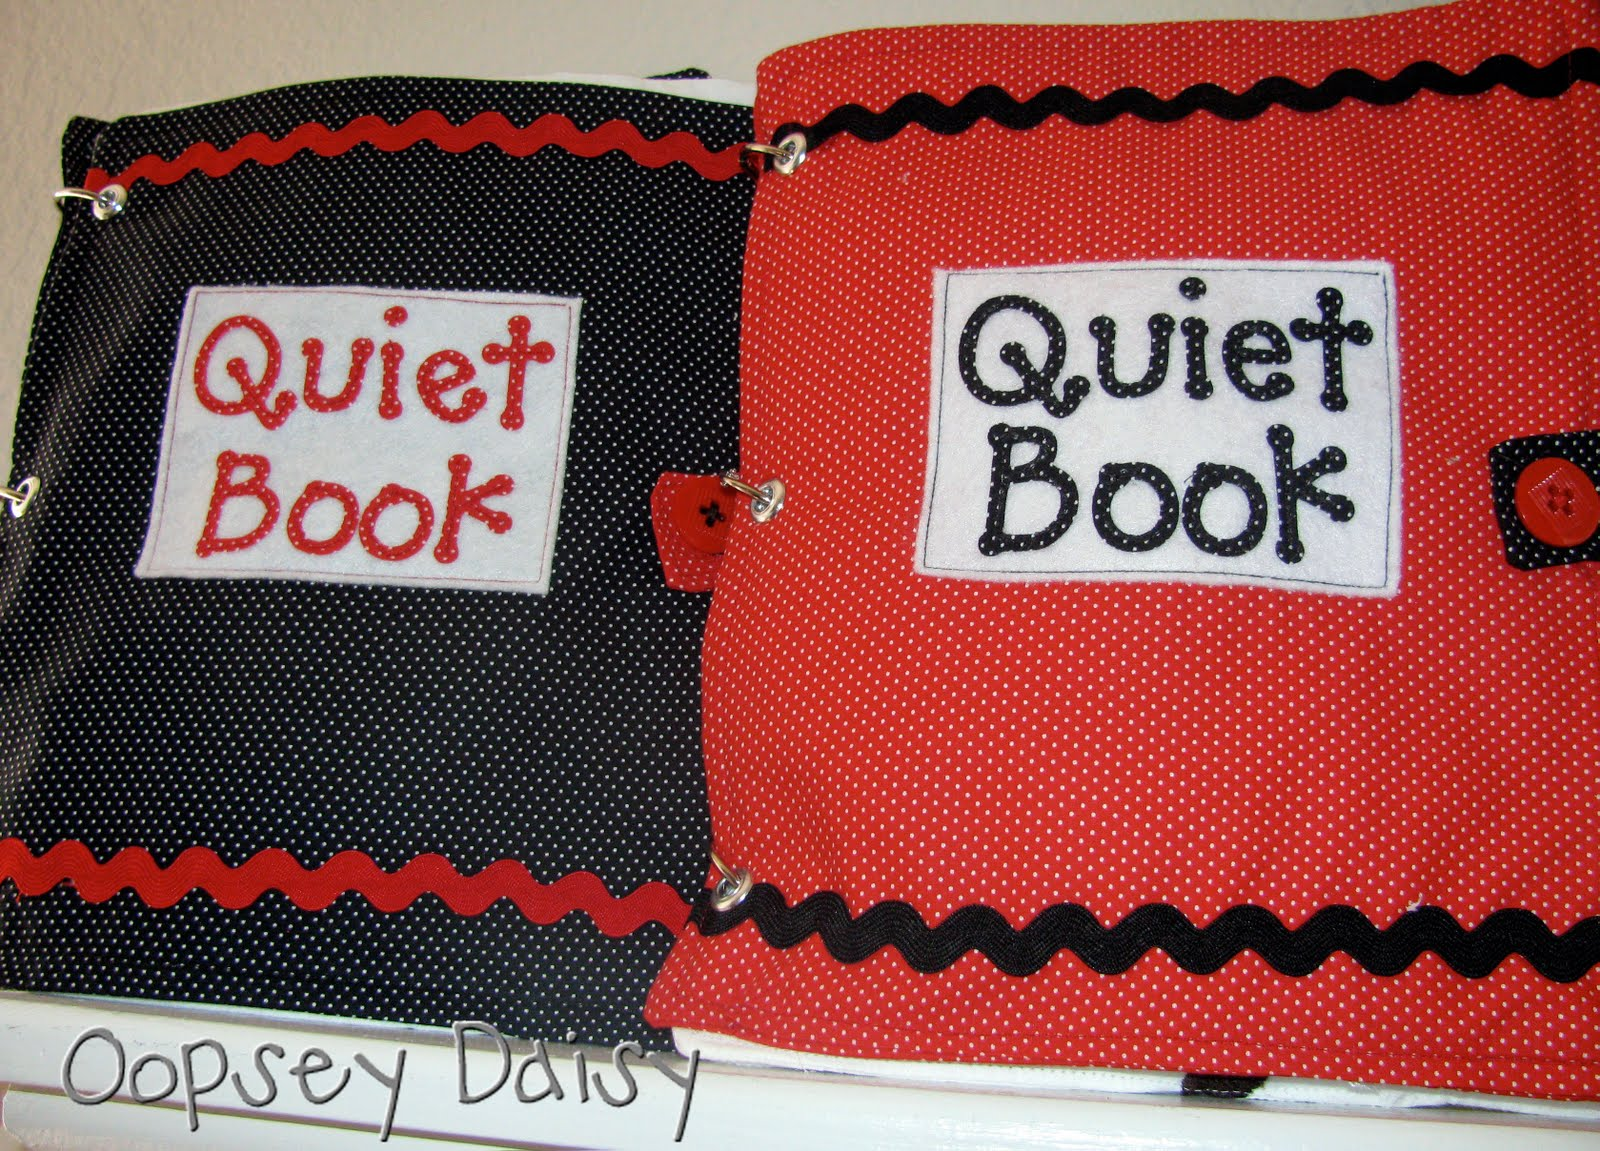 The Quiet Book Makes Its Debut!